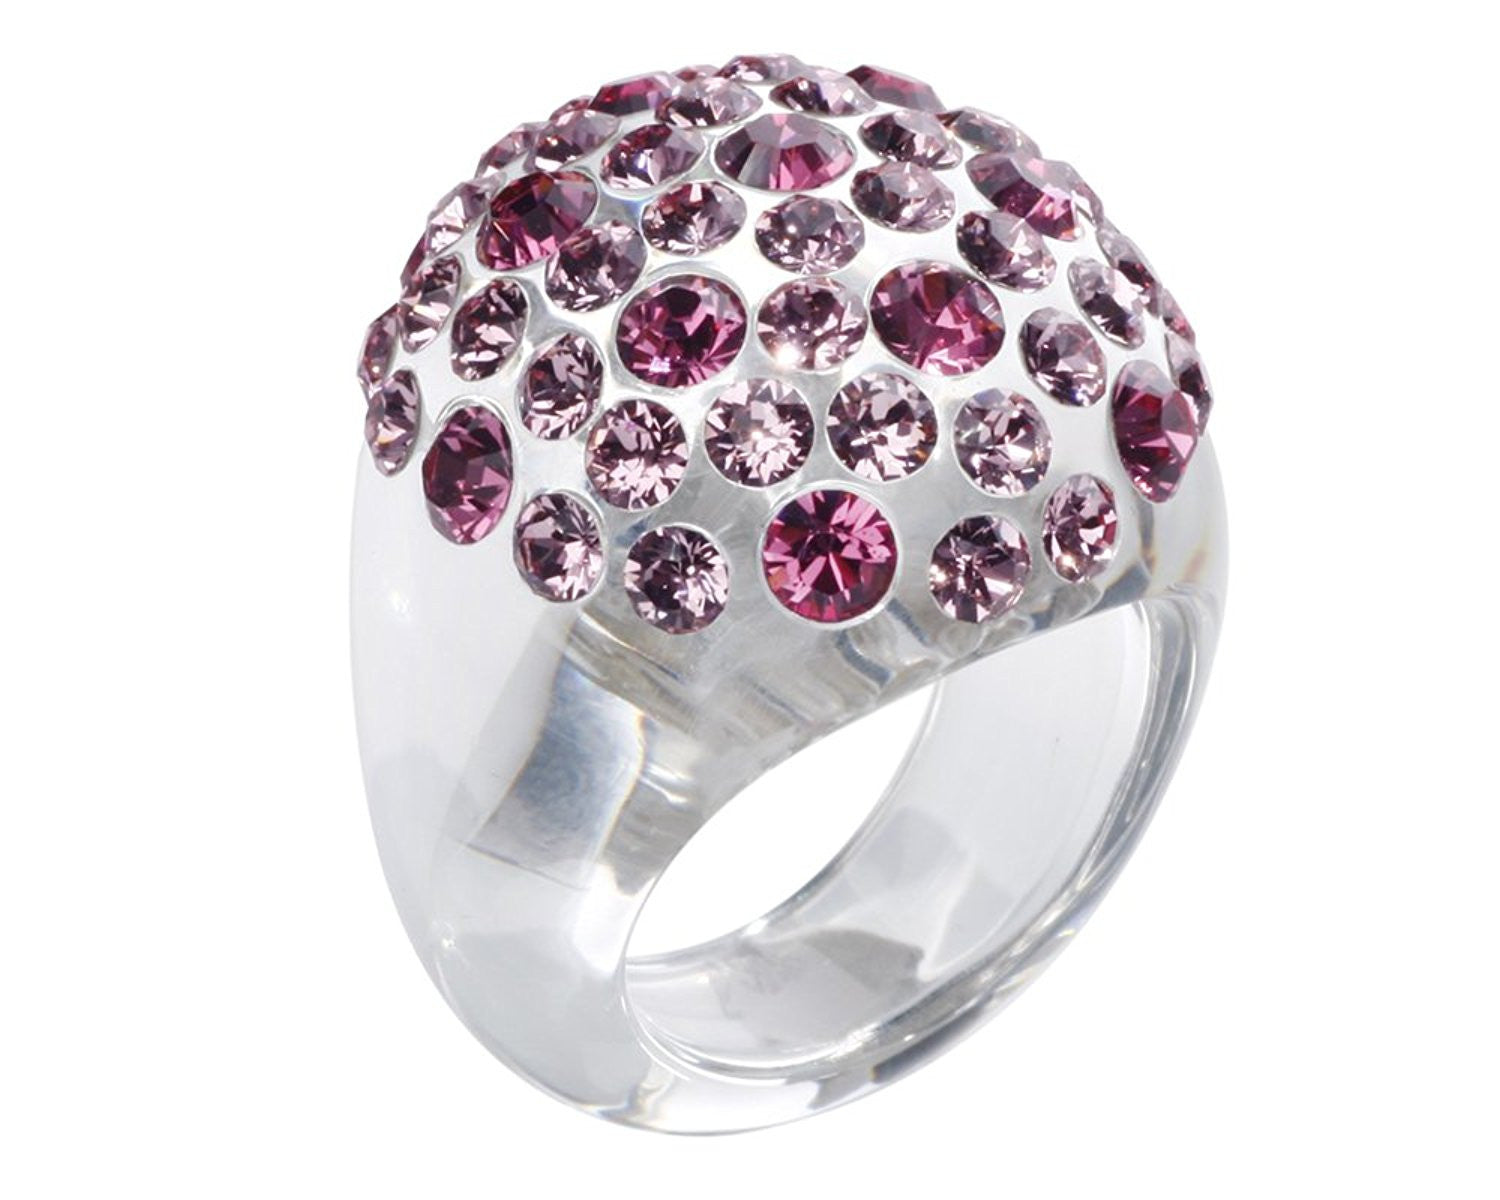 Clear Dome Ring With Pink Swarovski Crystals